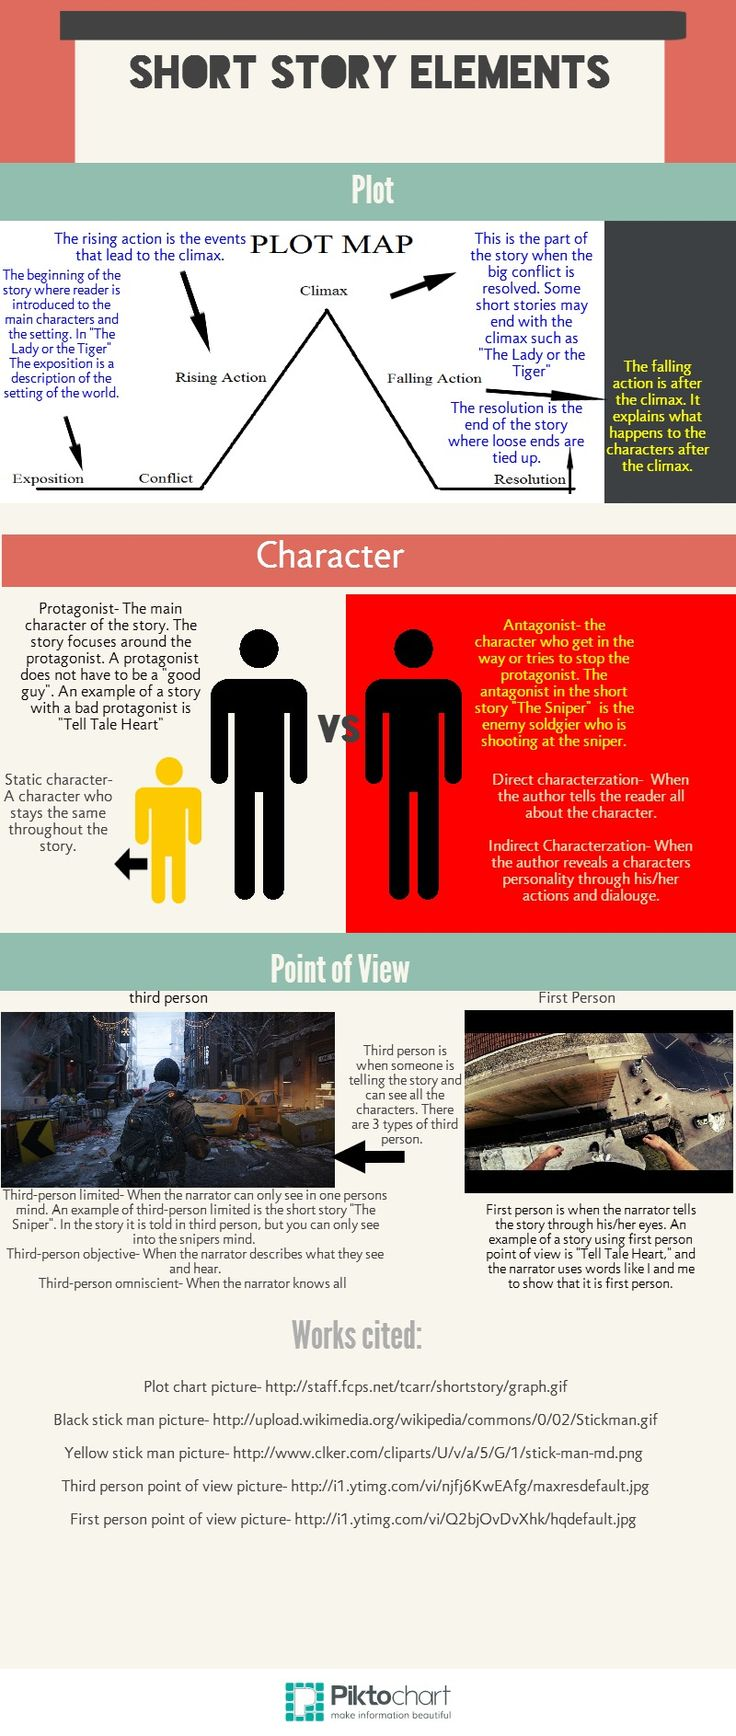 Elements of Short Story Infographic Project